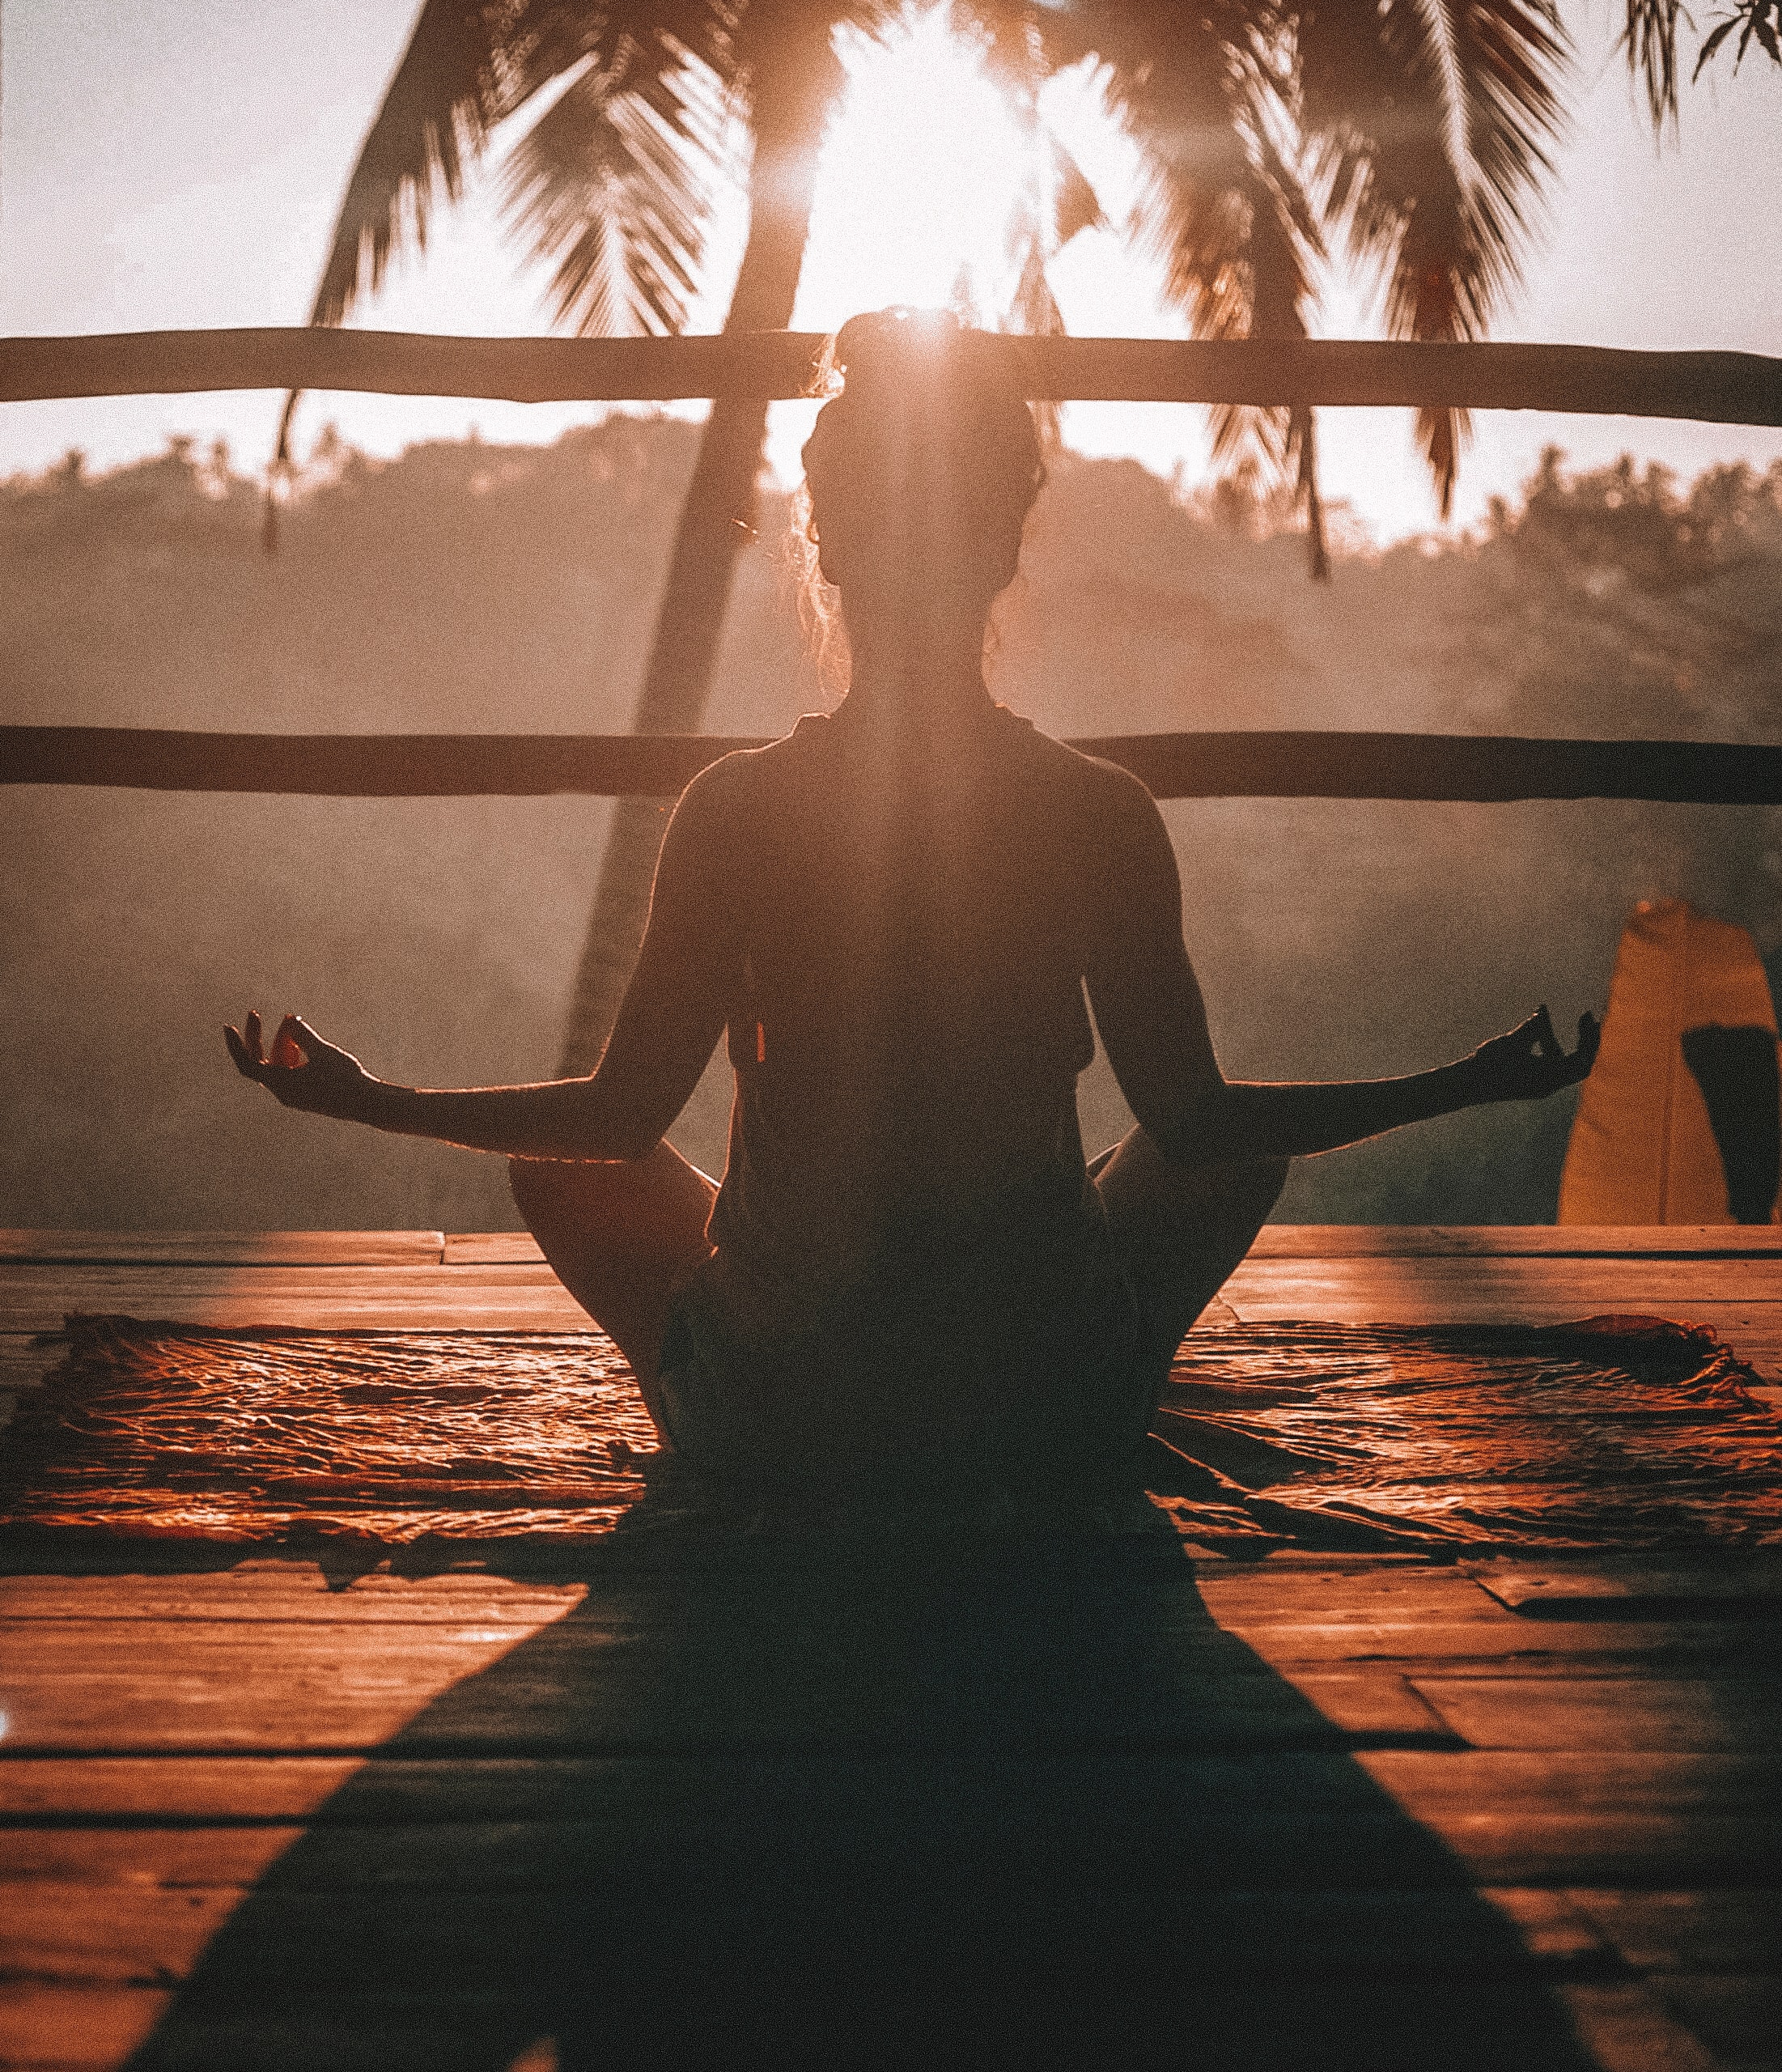 meditation for stress relief | Stress relief activities that are scientifically proven, stress relief activities at home